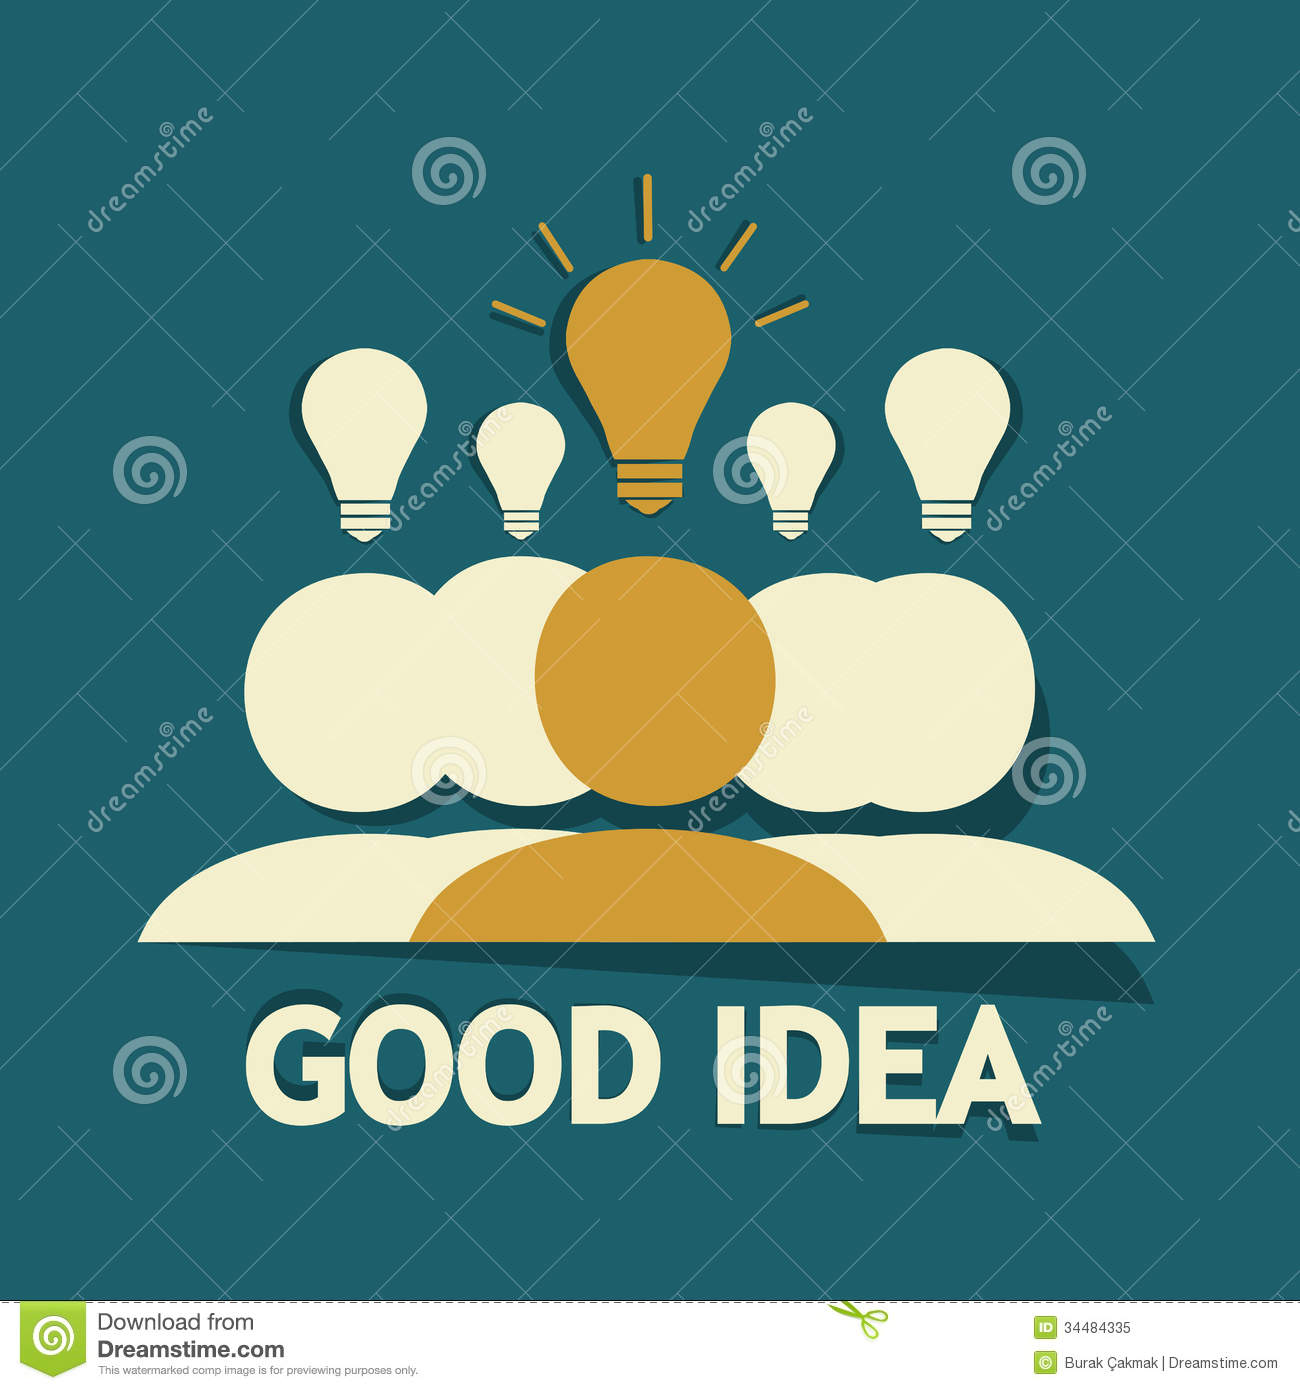 good idea royalty free stock photo image 34484335